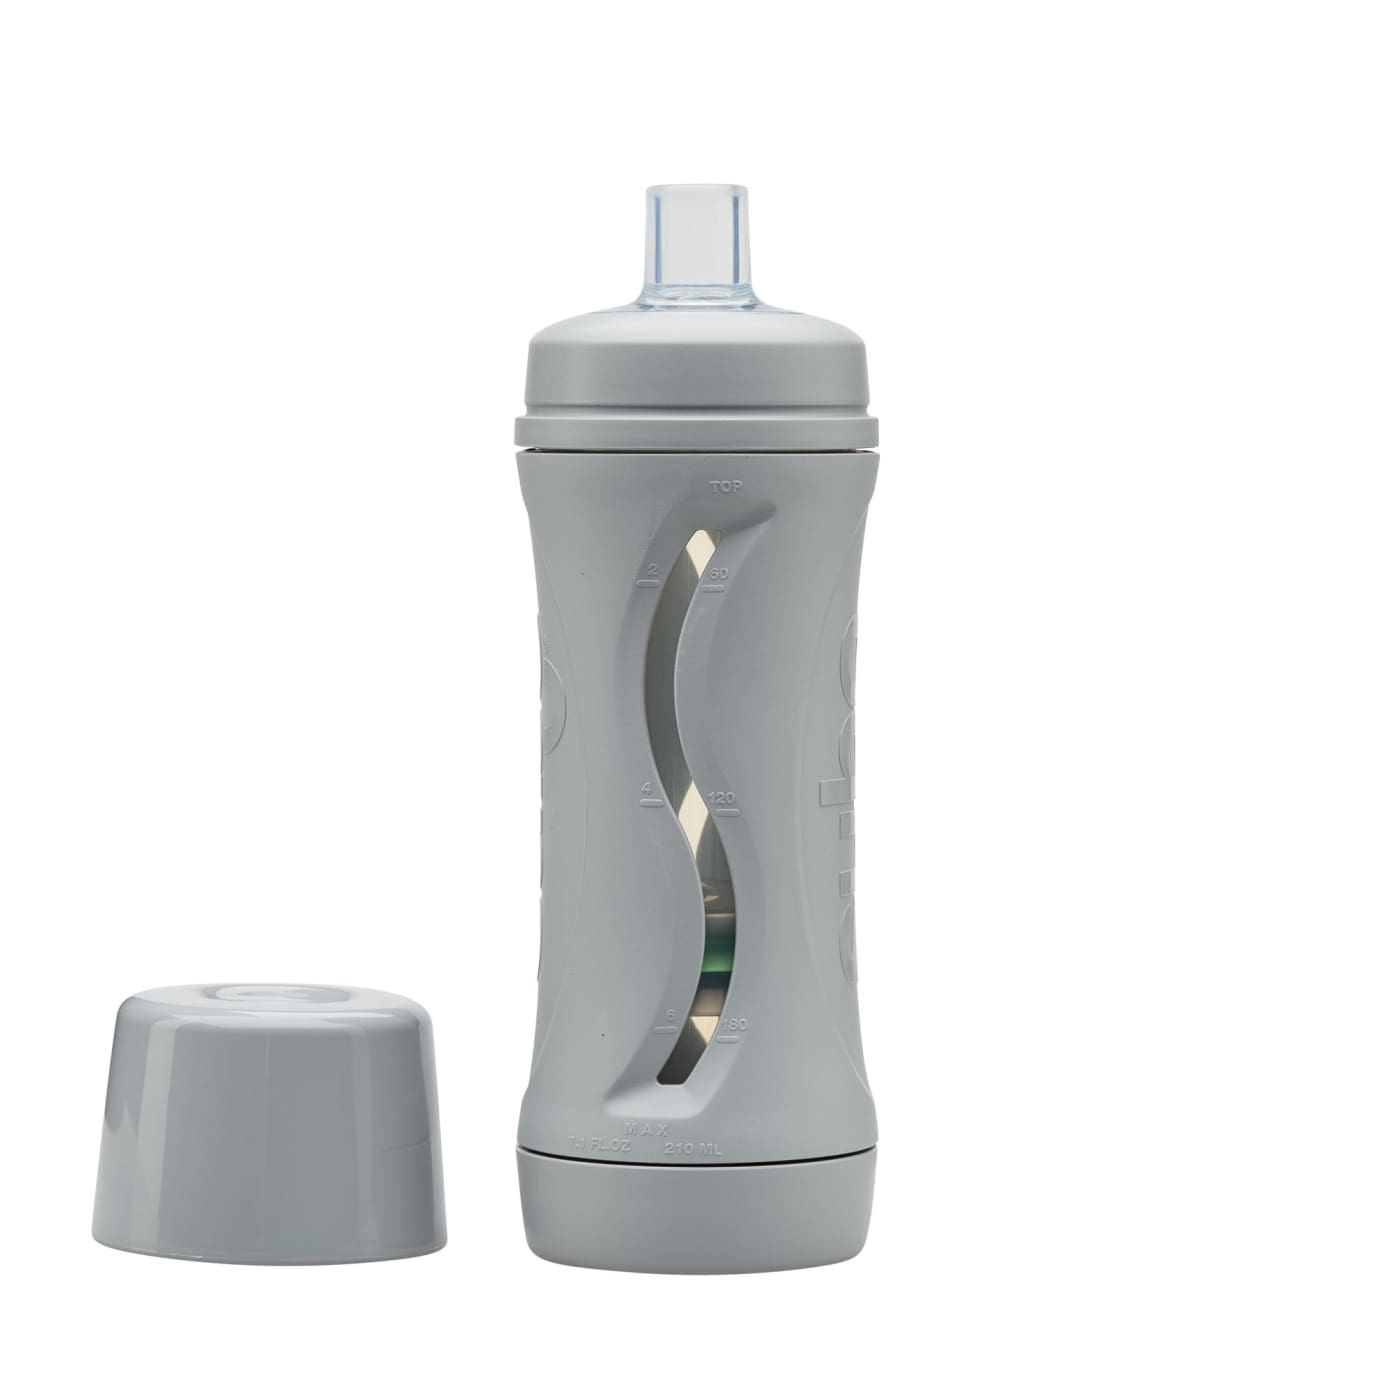 Subo The Food Bottle - Grey - Grey - NURSING & FEEDING - CONTAINERS/FEEDERS